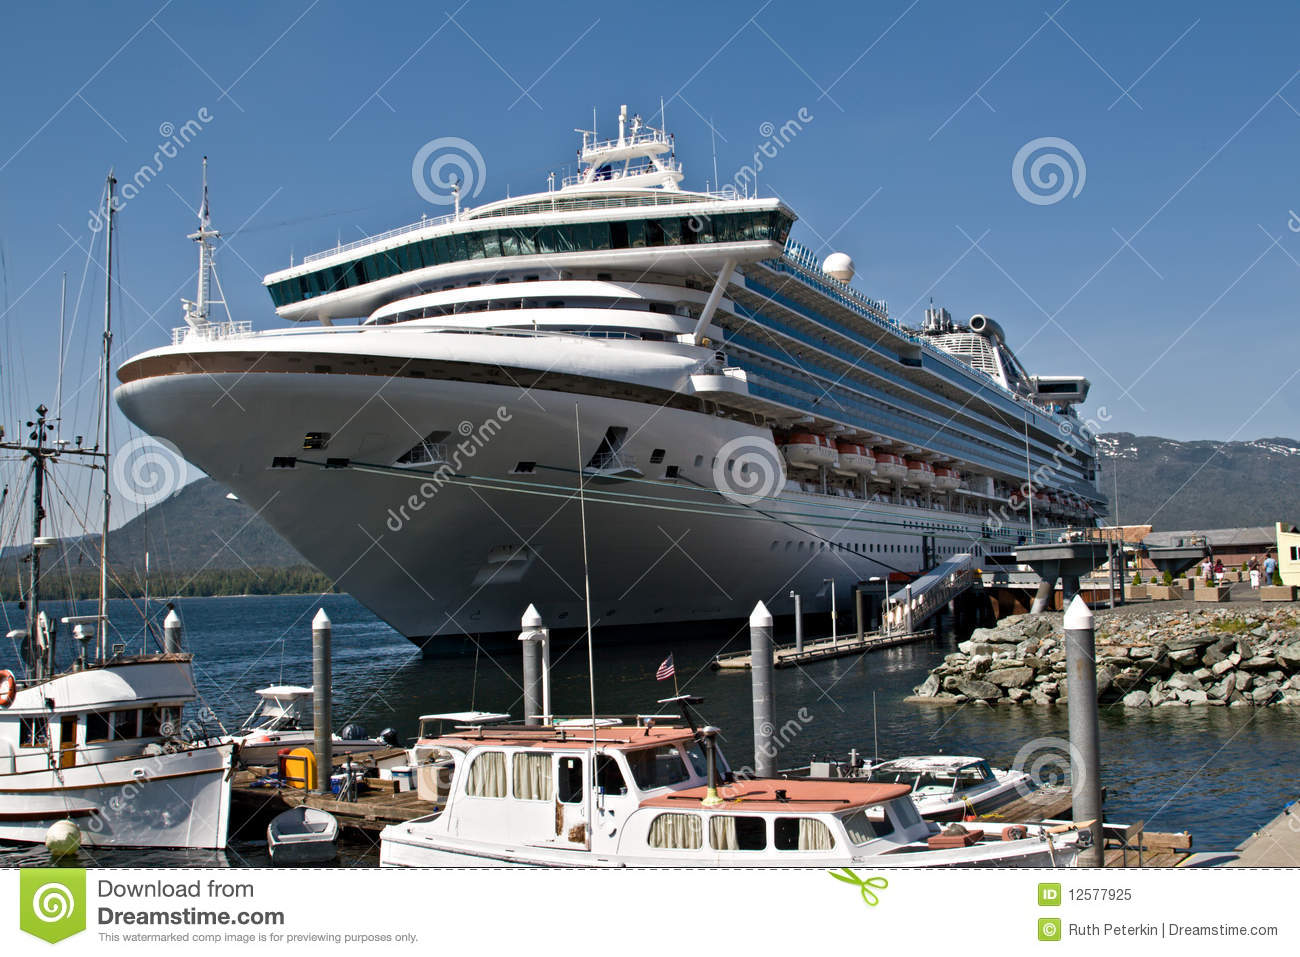 Cruise Ship In Port In Ketchikan, Alaska Royalty Free Stock Photo ...